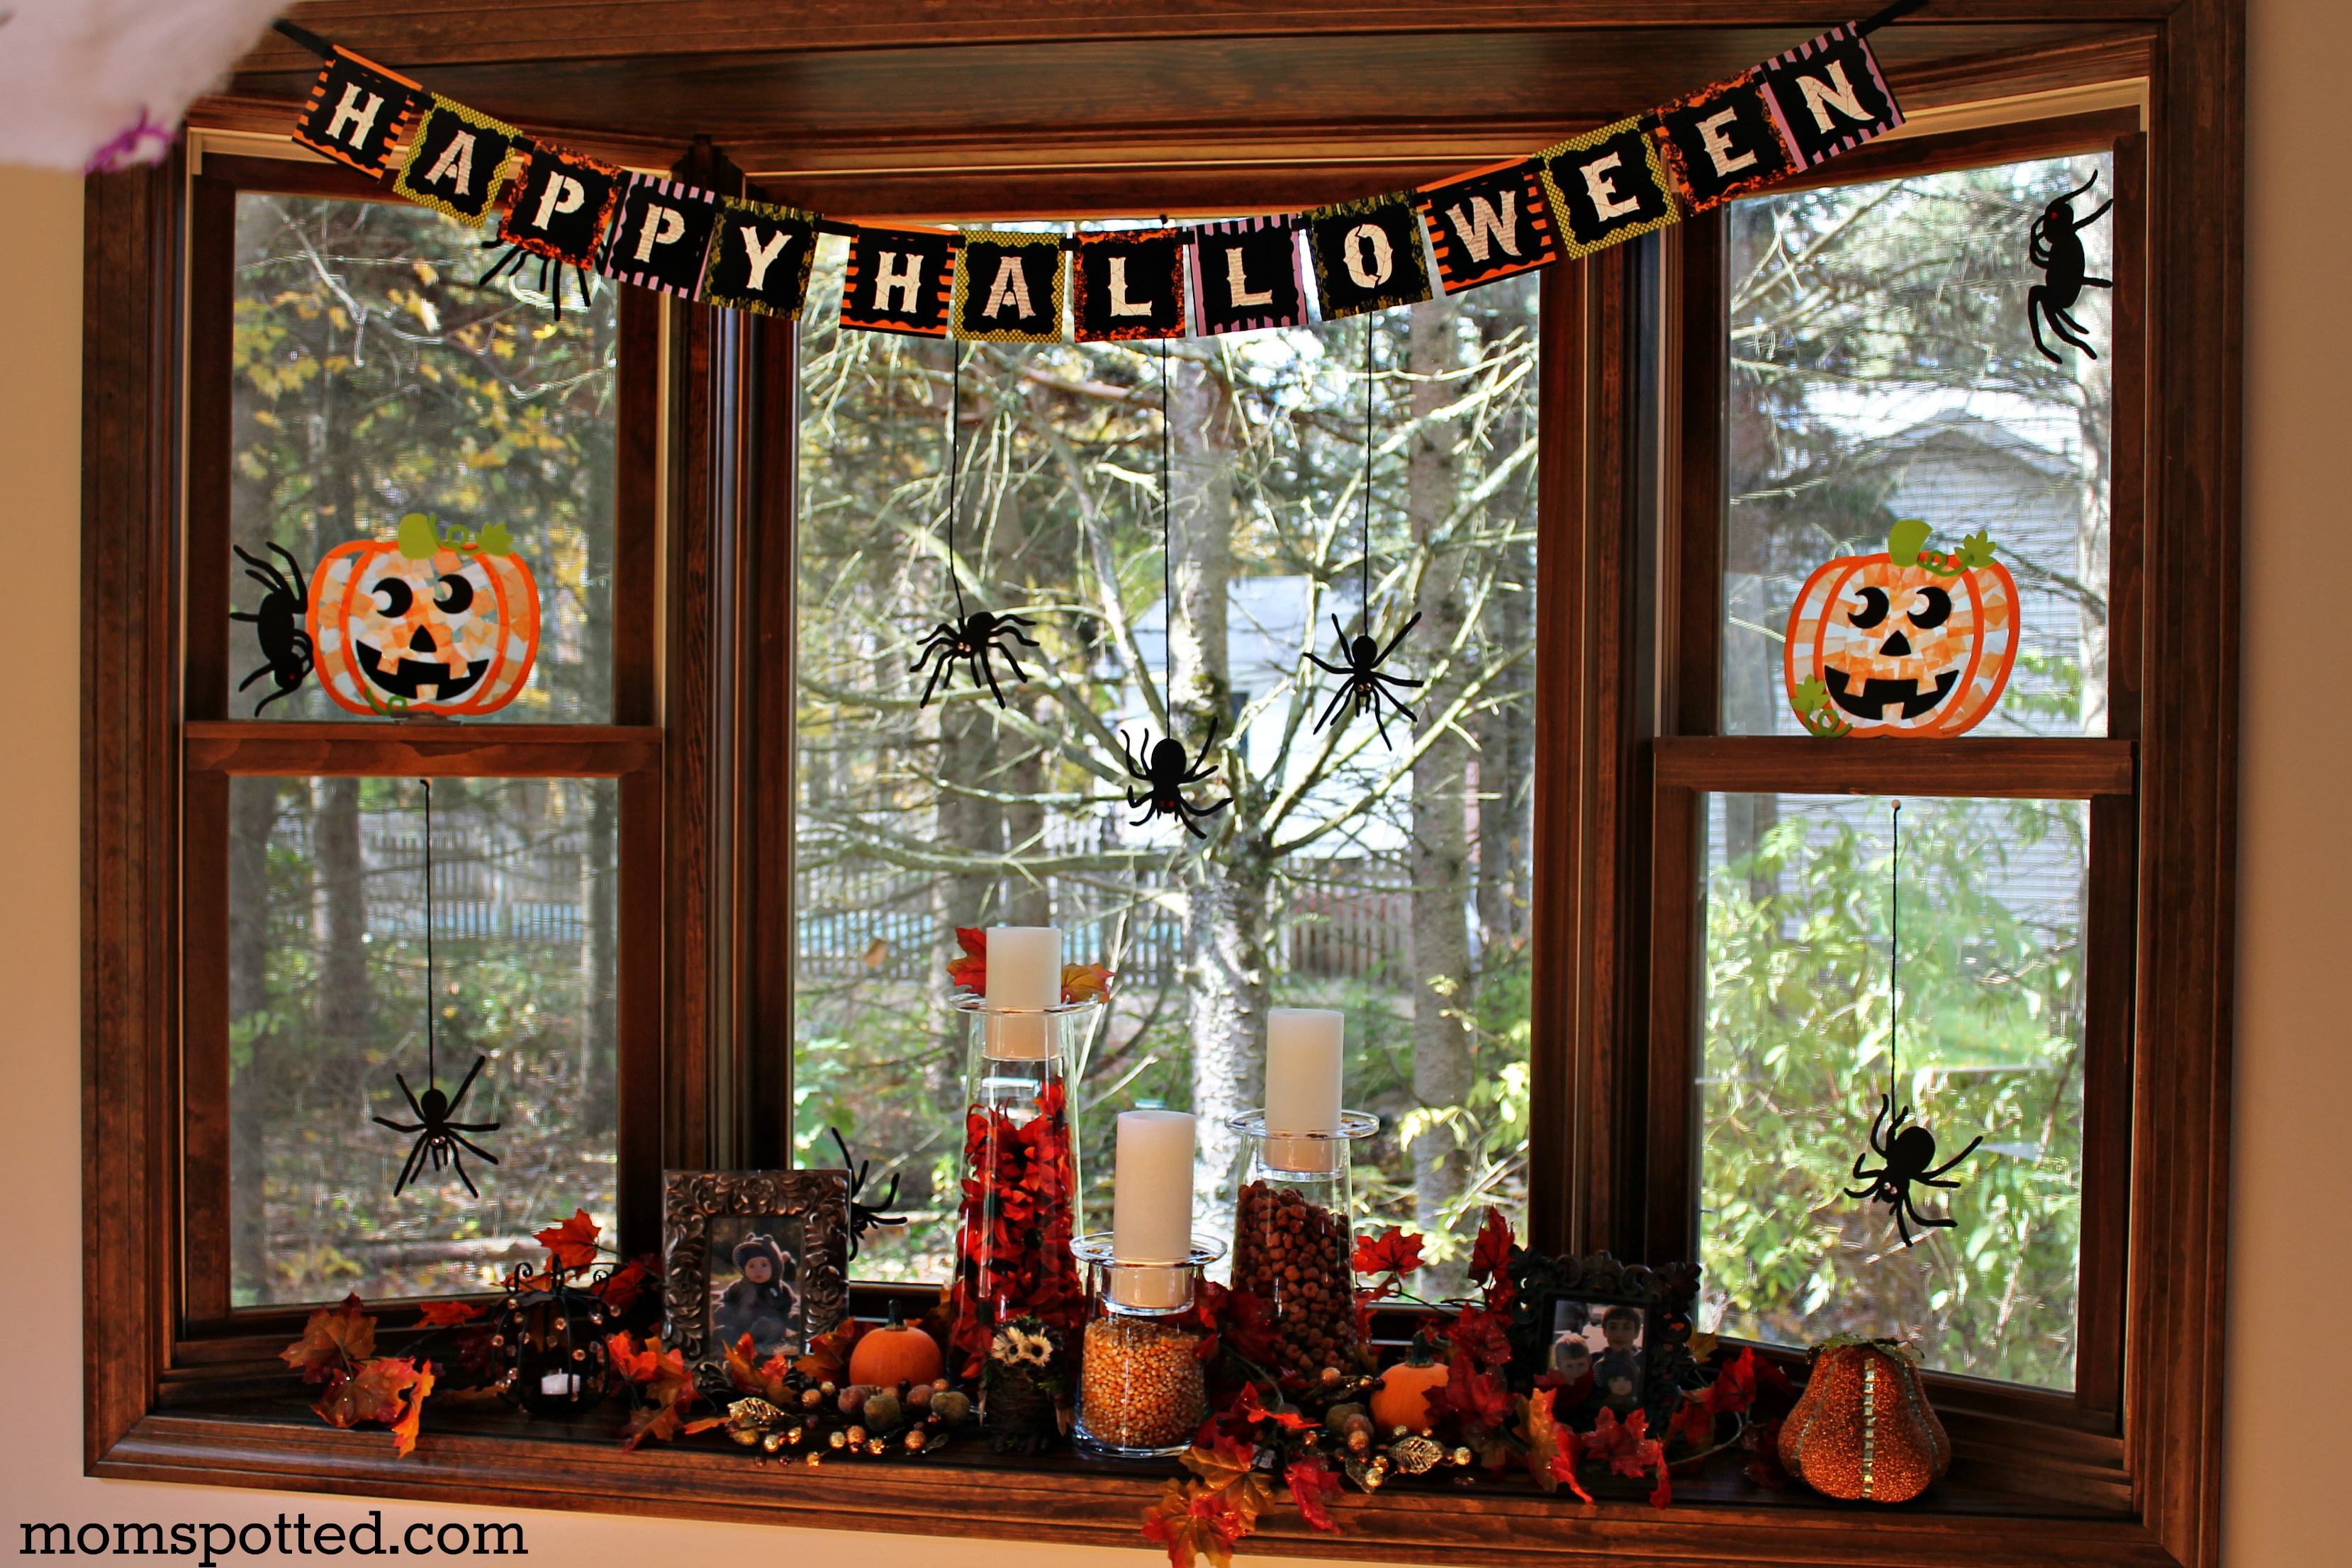 In Home Decorations Autumn Halloween Home Decor Ideas My Tips Tricks Momspotted